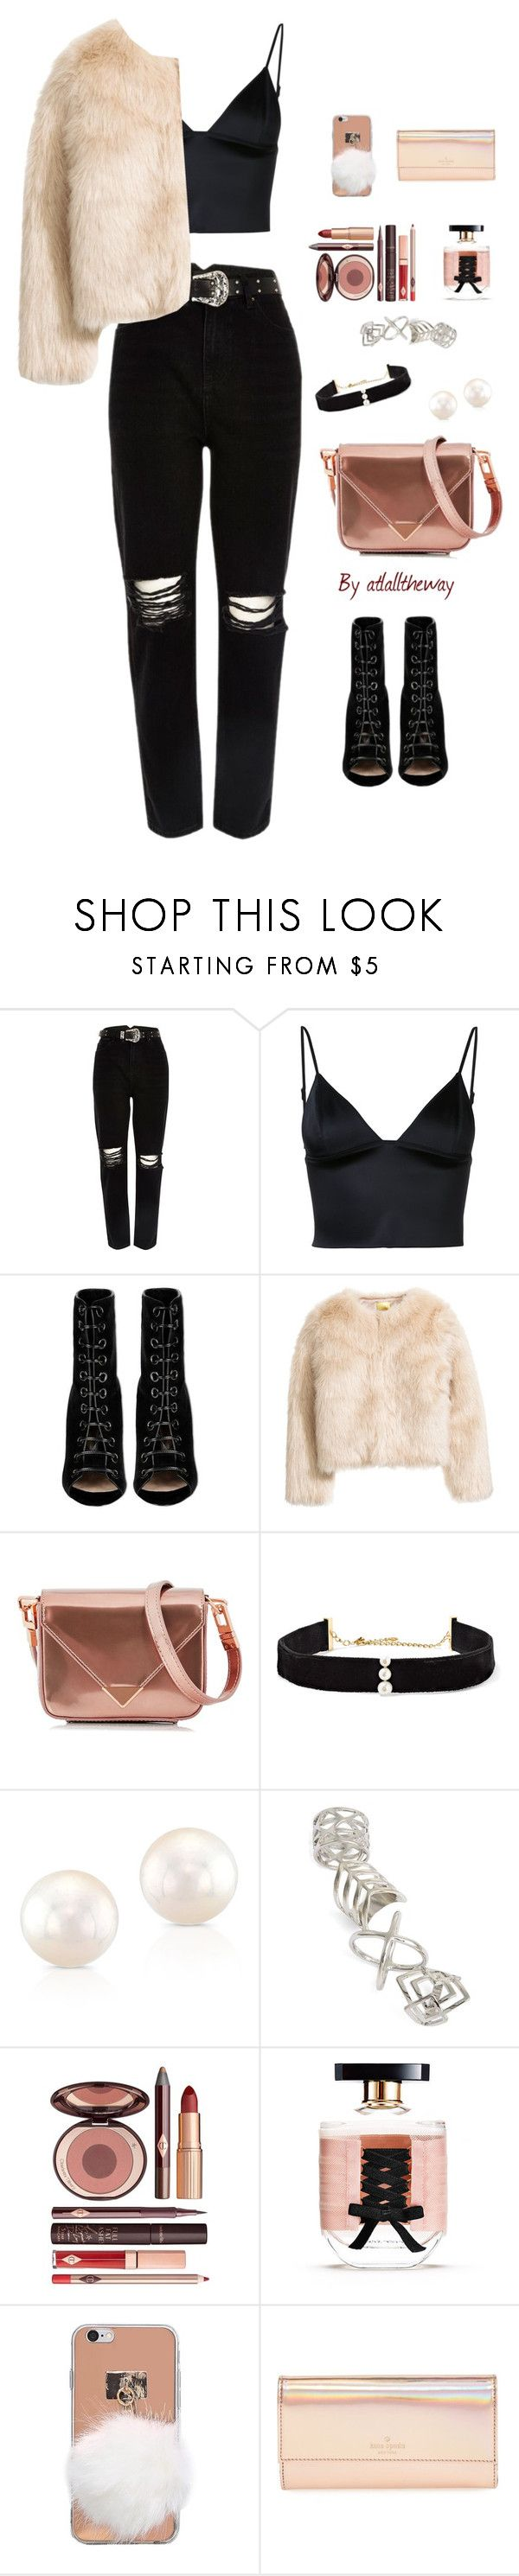 """Untitled #819"" by atlalltheway ❤ liked on Polyvore featuring River Island, T By Alexander Wang, Barbara Bui, Alexander Wang, Anissa Kermiche, Anne Sisteron, Topshop, Charlotte Tilbury, Victoria's Secret and Kate Spade"